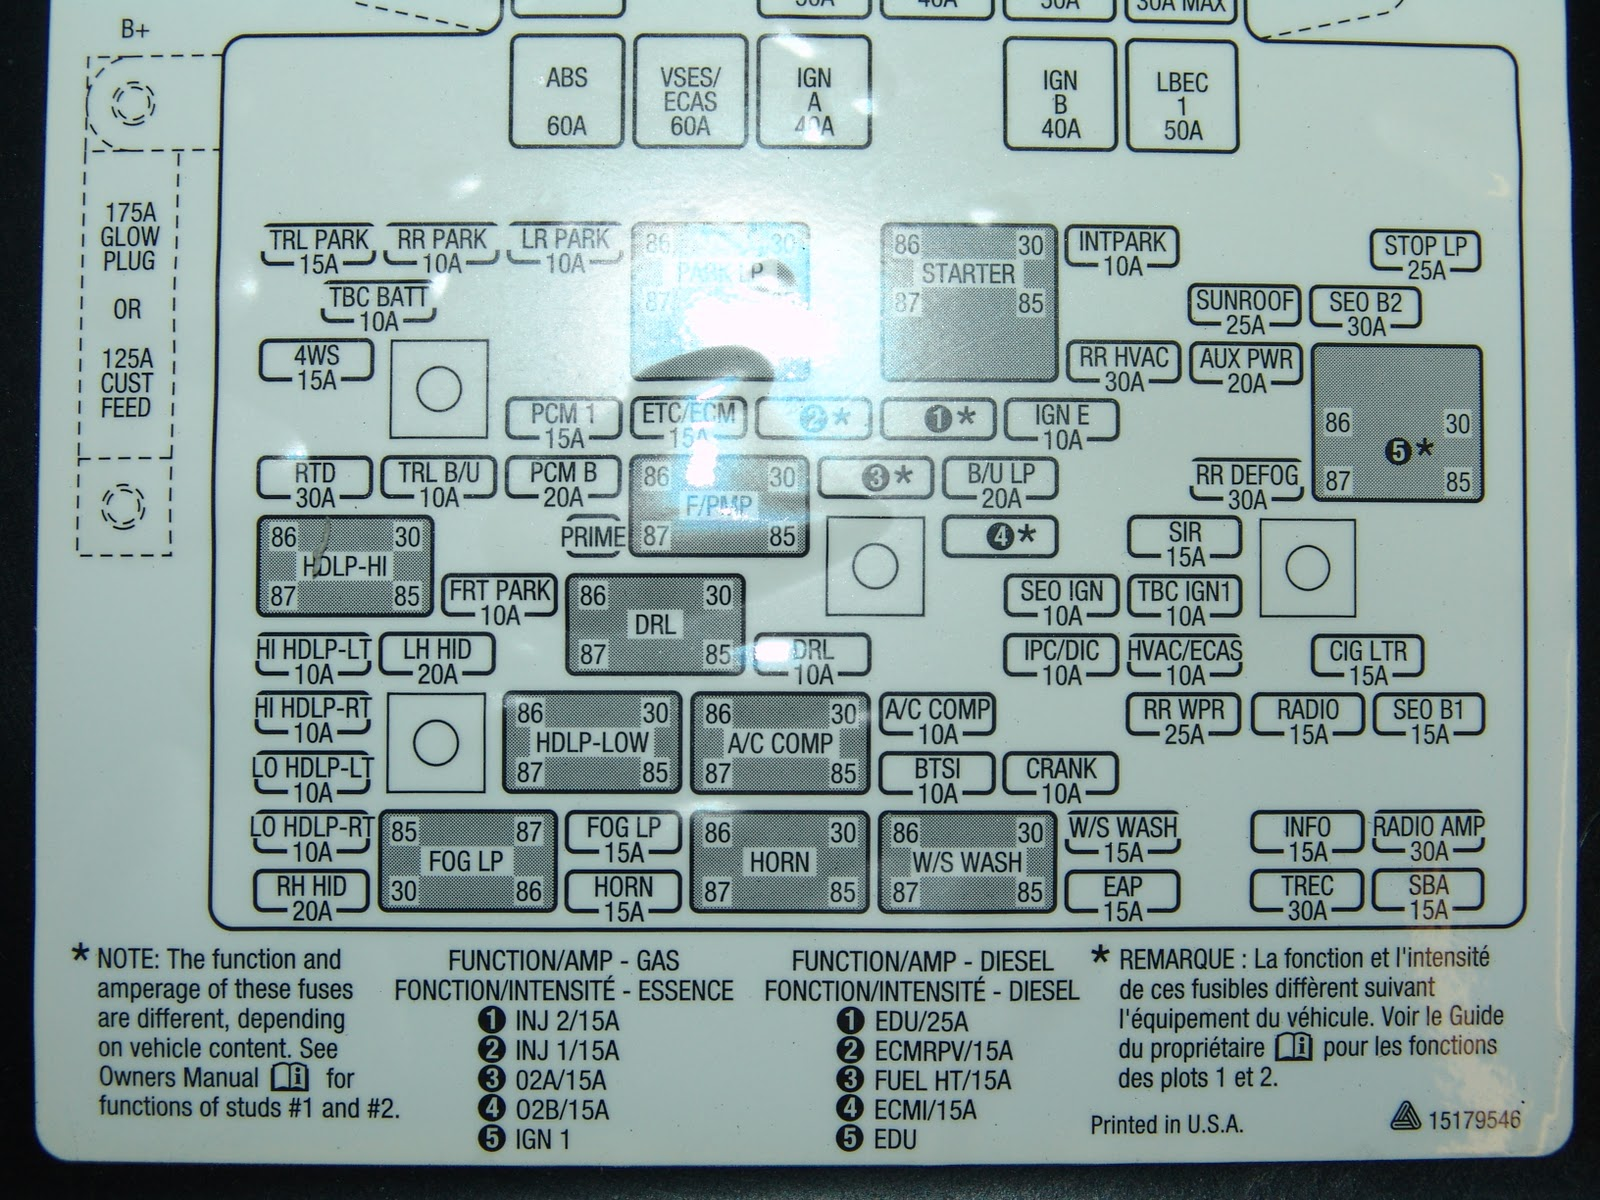 2005 Chevy Suburban Fuse Diagram Electrical Wiring Diagrams Box Panel For Aveo Image Details 1999 Silverado